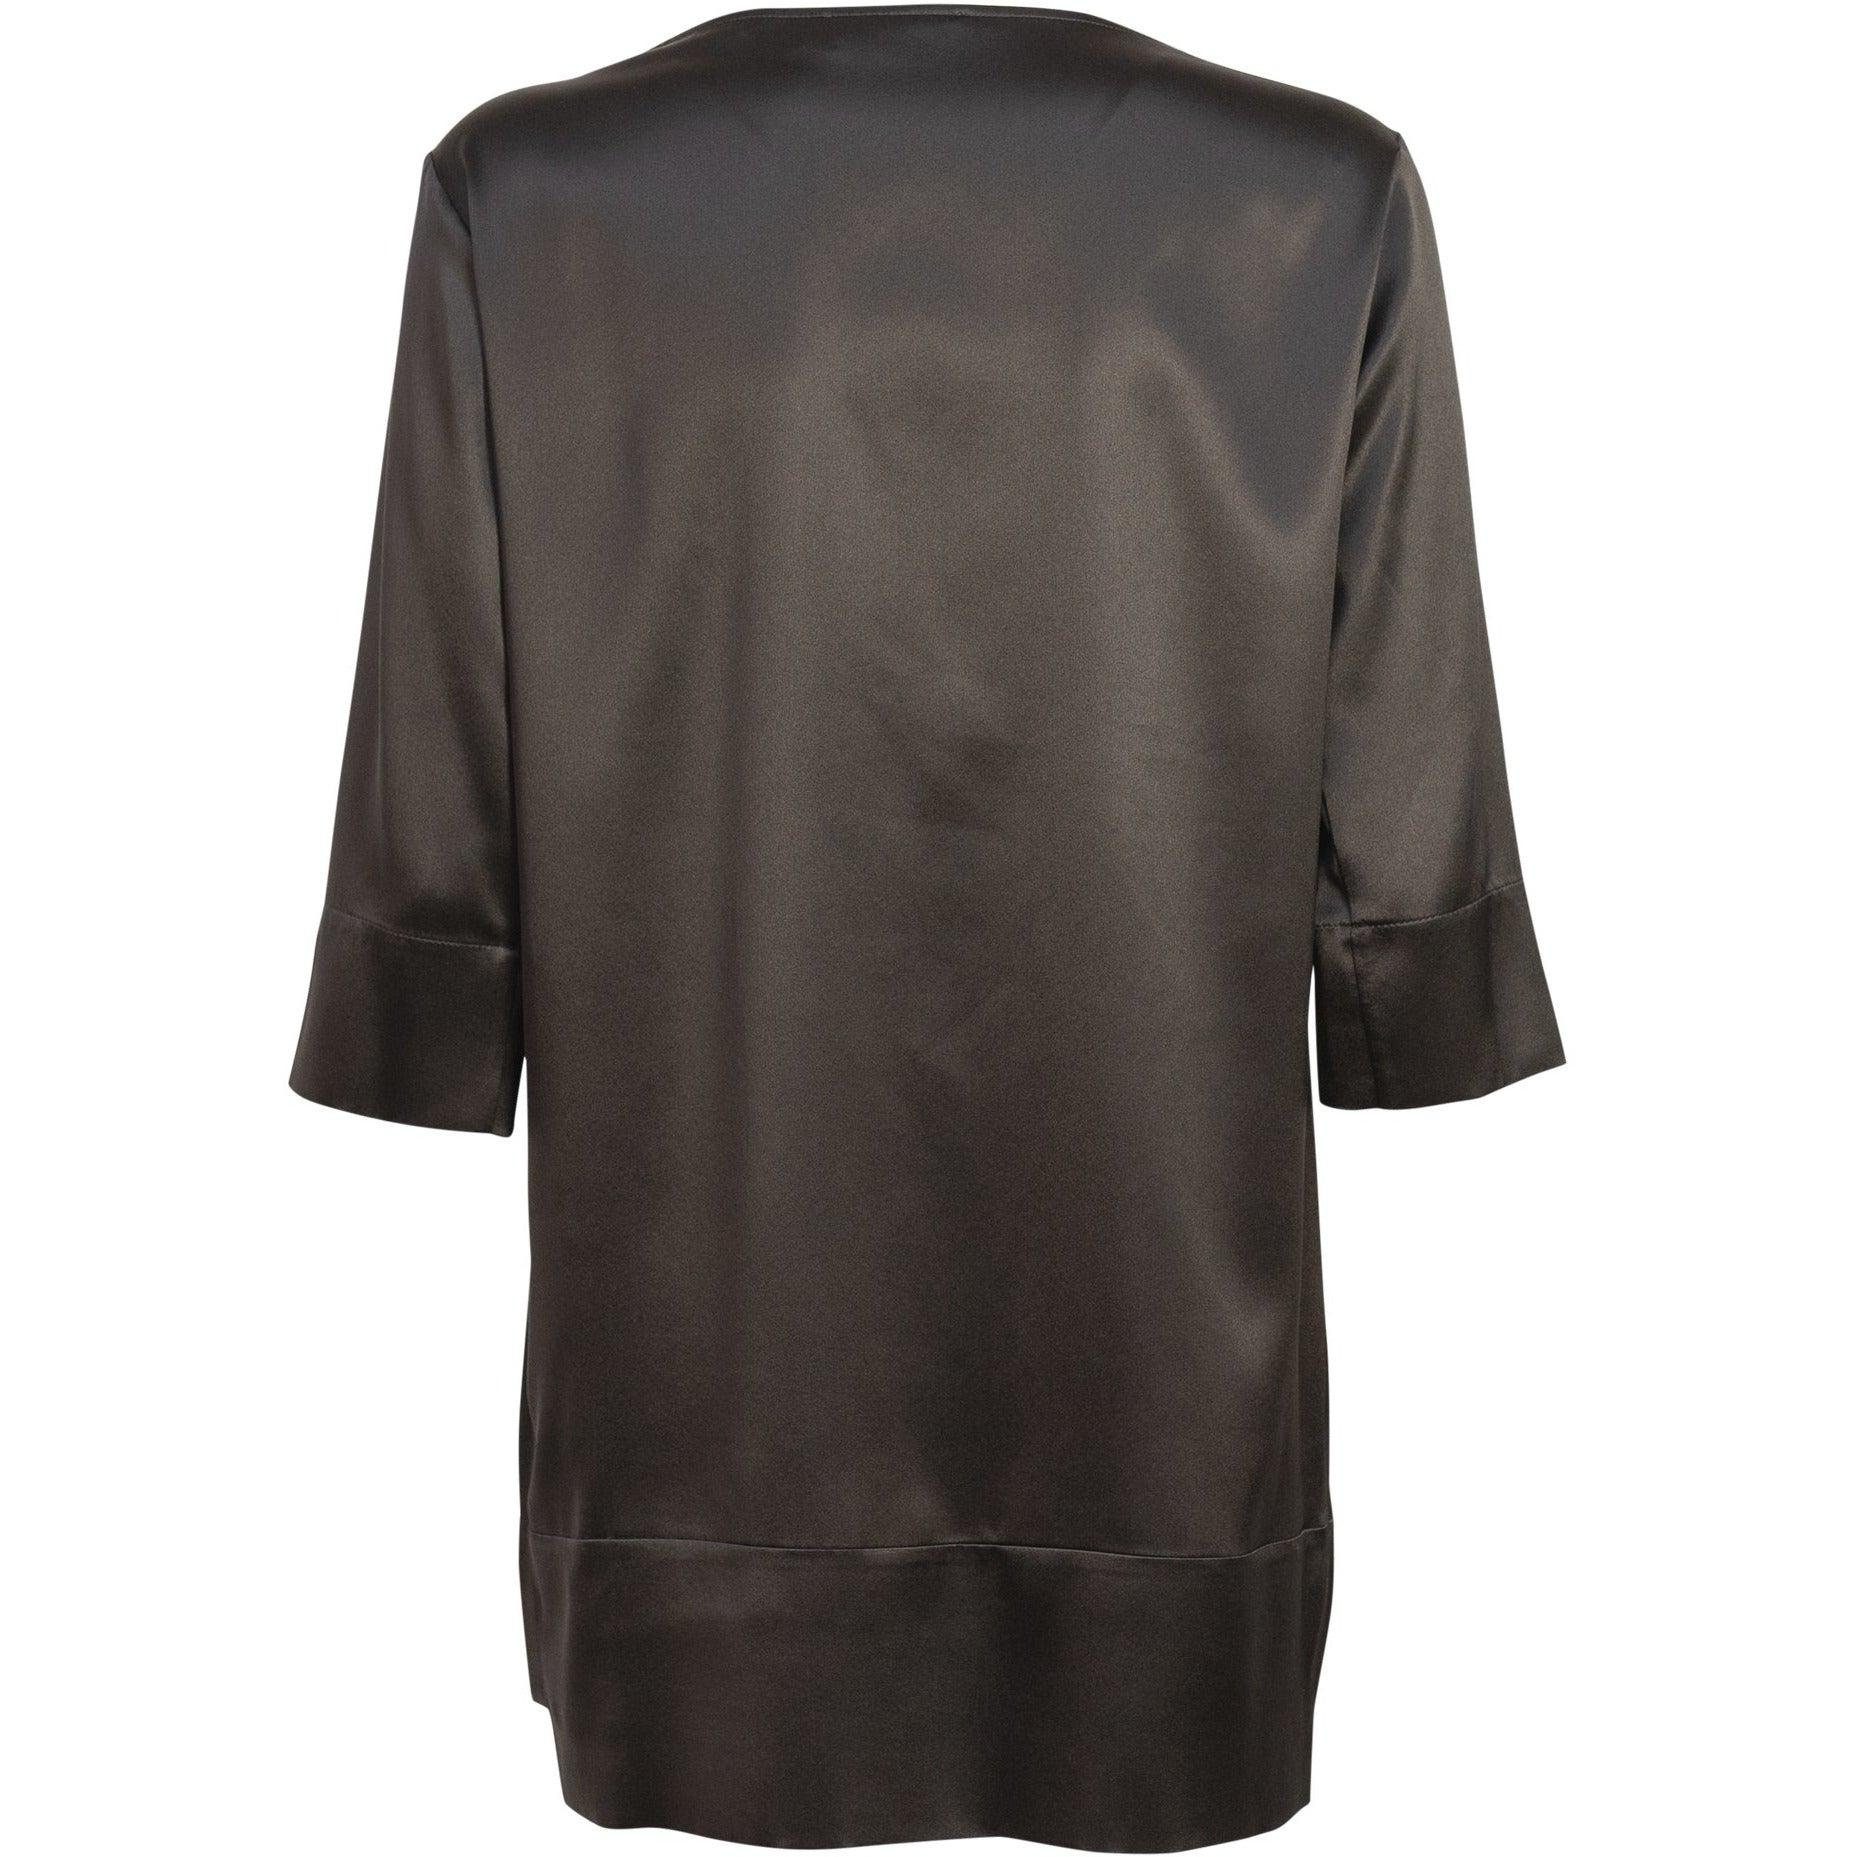 Palmer Blouse GOSP2633 - New Fall Winter 2019-2020 Collection